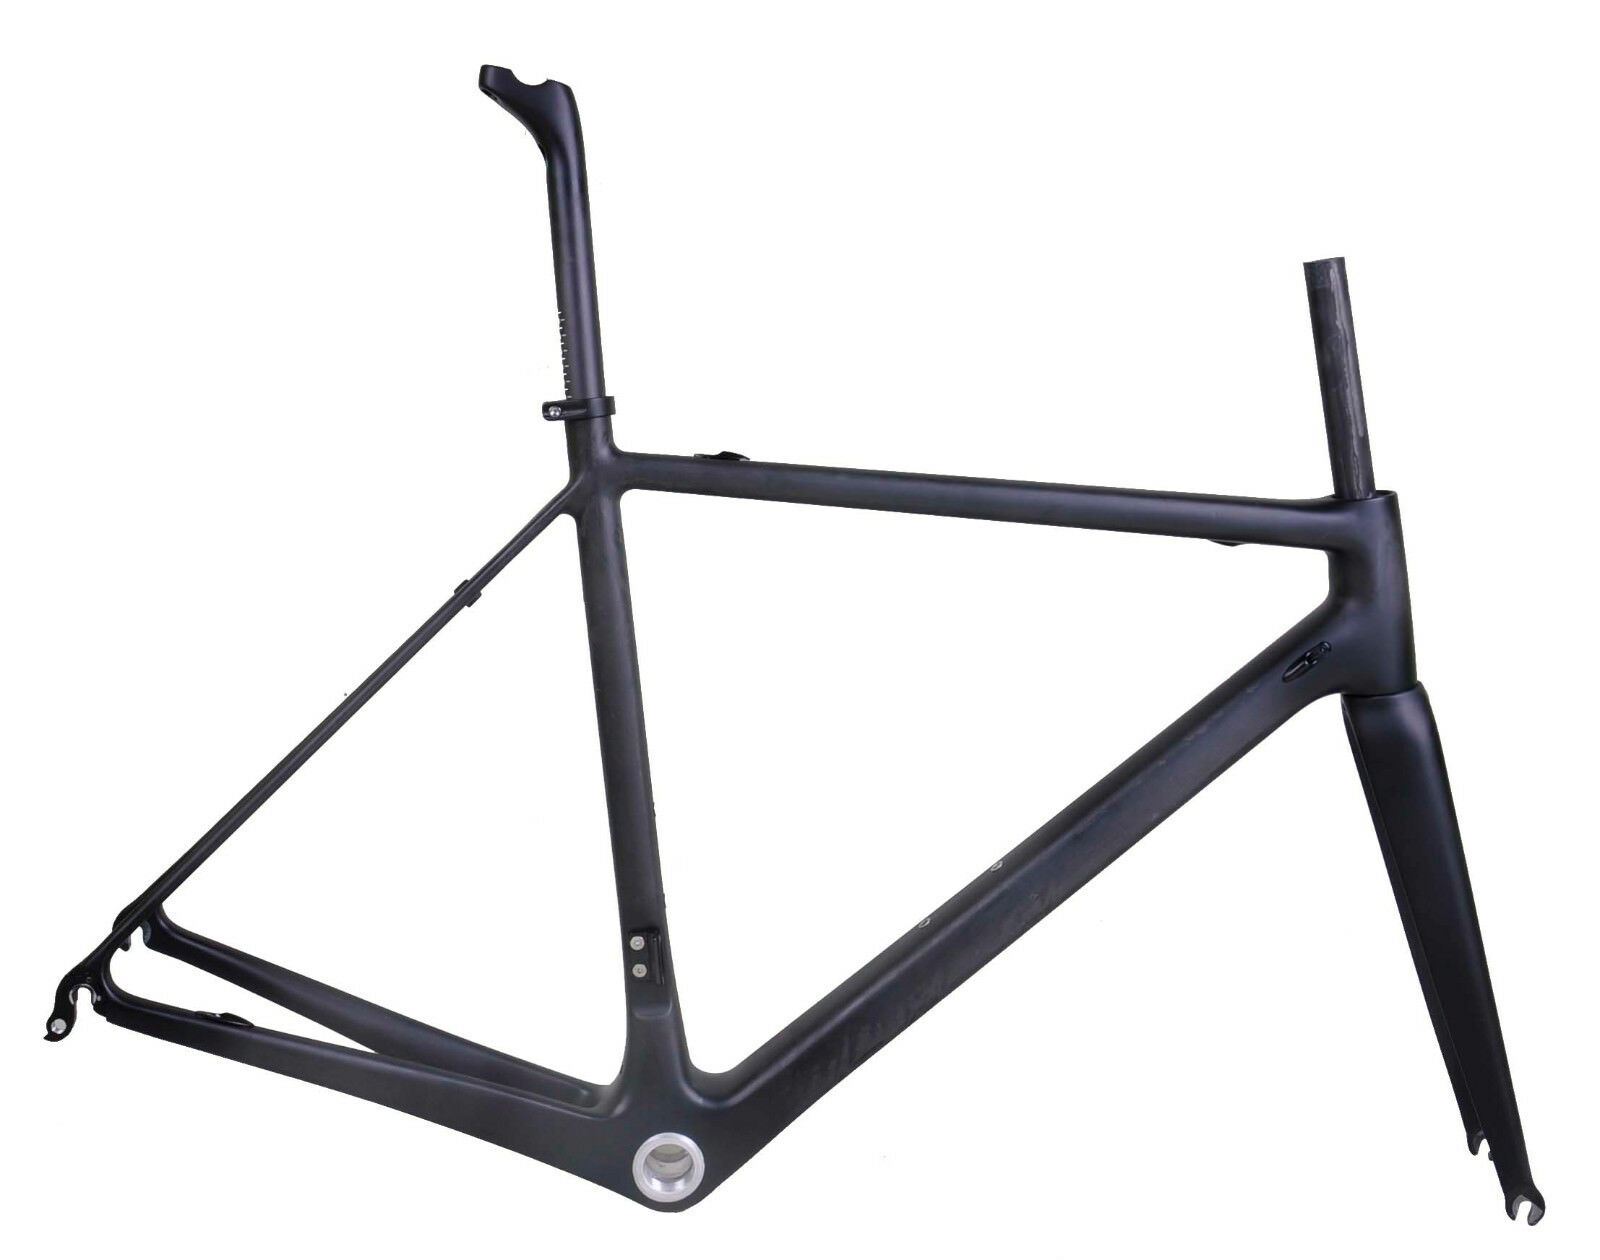 950g 56cm PF30 Carbon Road Bike Frame Fork Seatpost Internal Di2 UD Matt Race 25